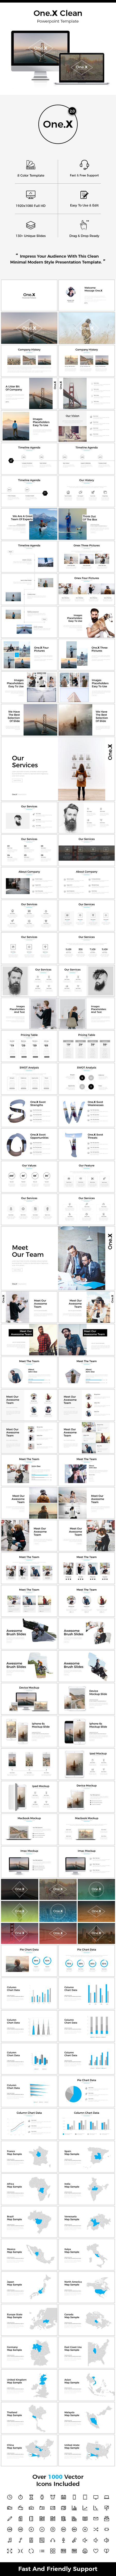 One.X 2.0 Clean Powerpoint Template - Creative PowerPoint Templates